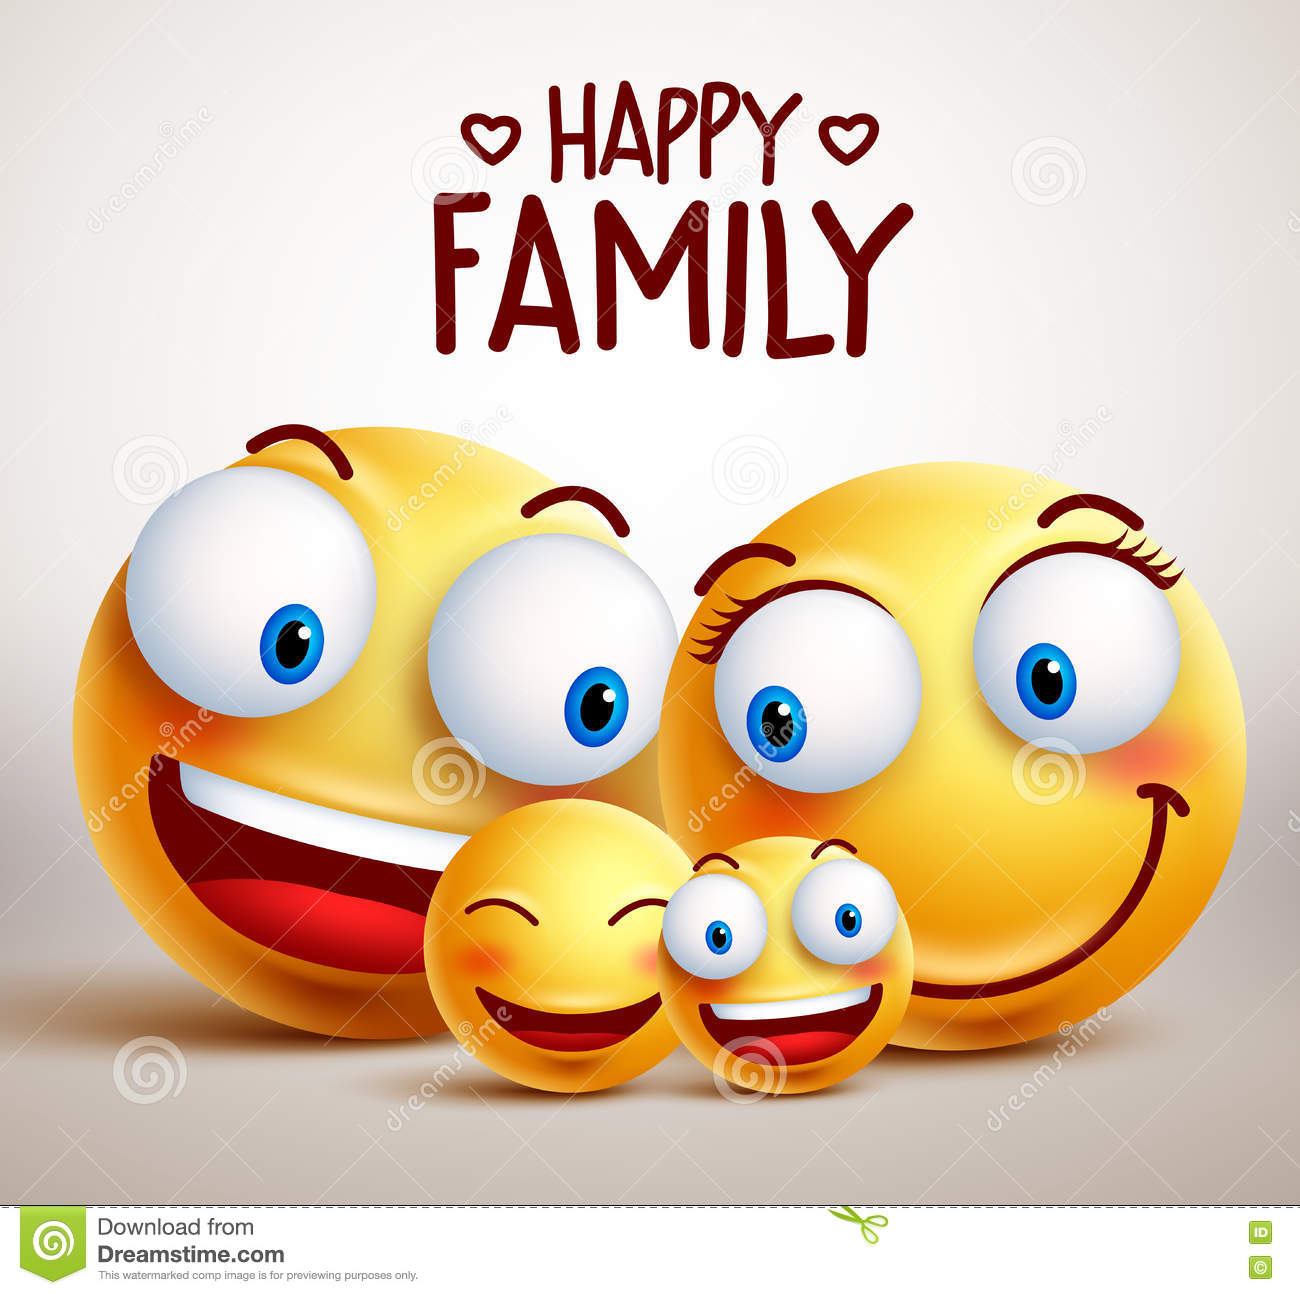 Happy family smiley face vector characters with father, mother and children